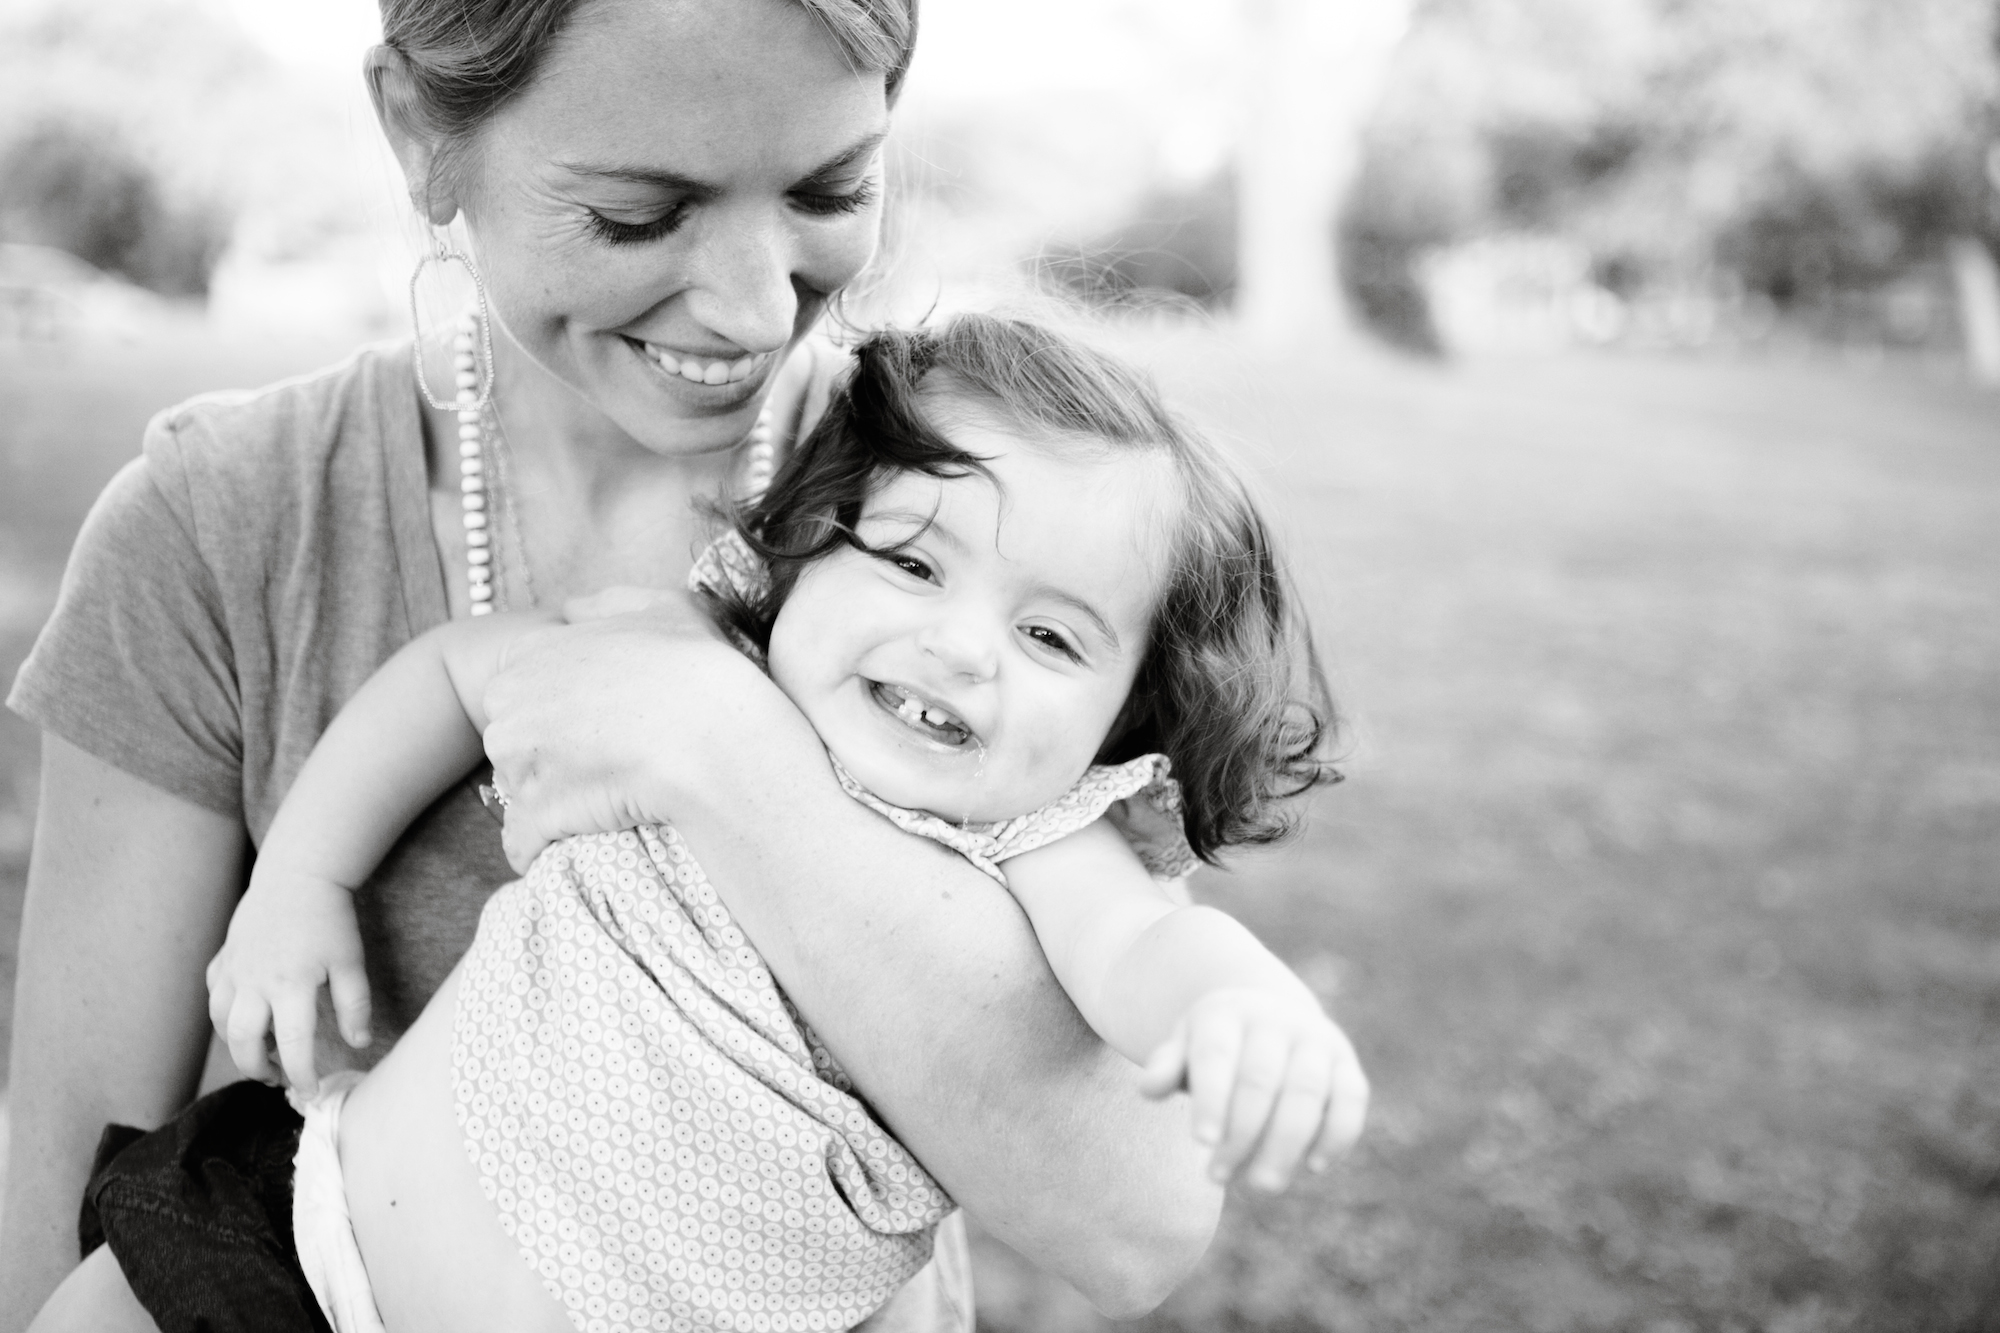 kate stafford photography | mother's day